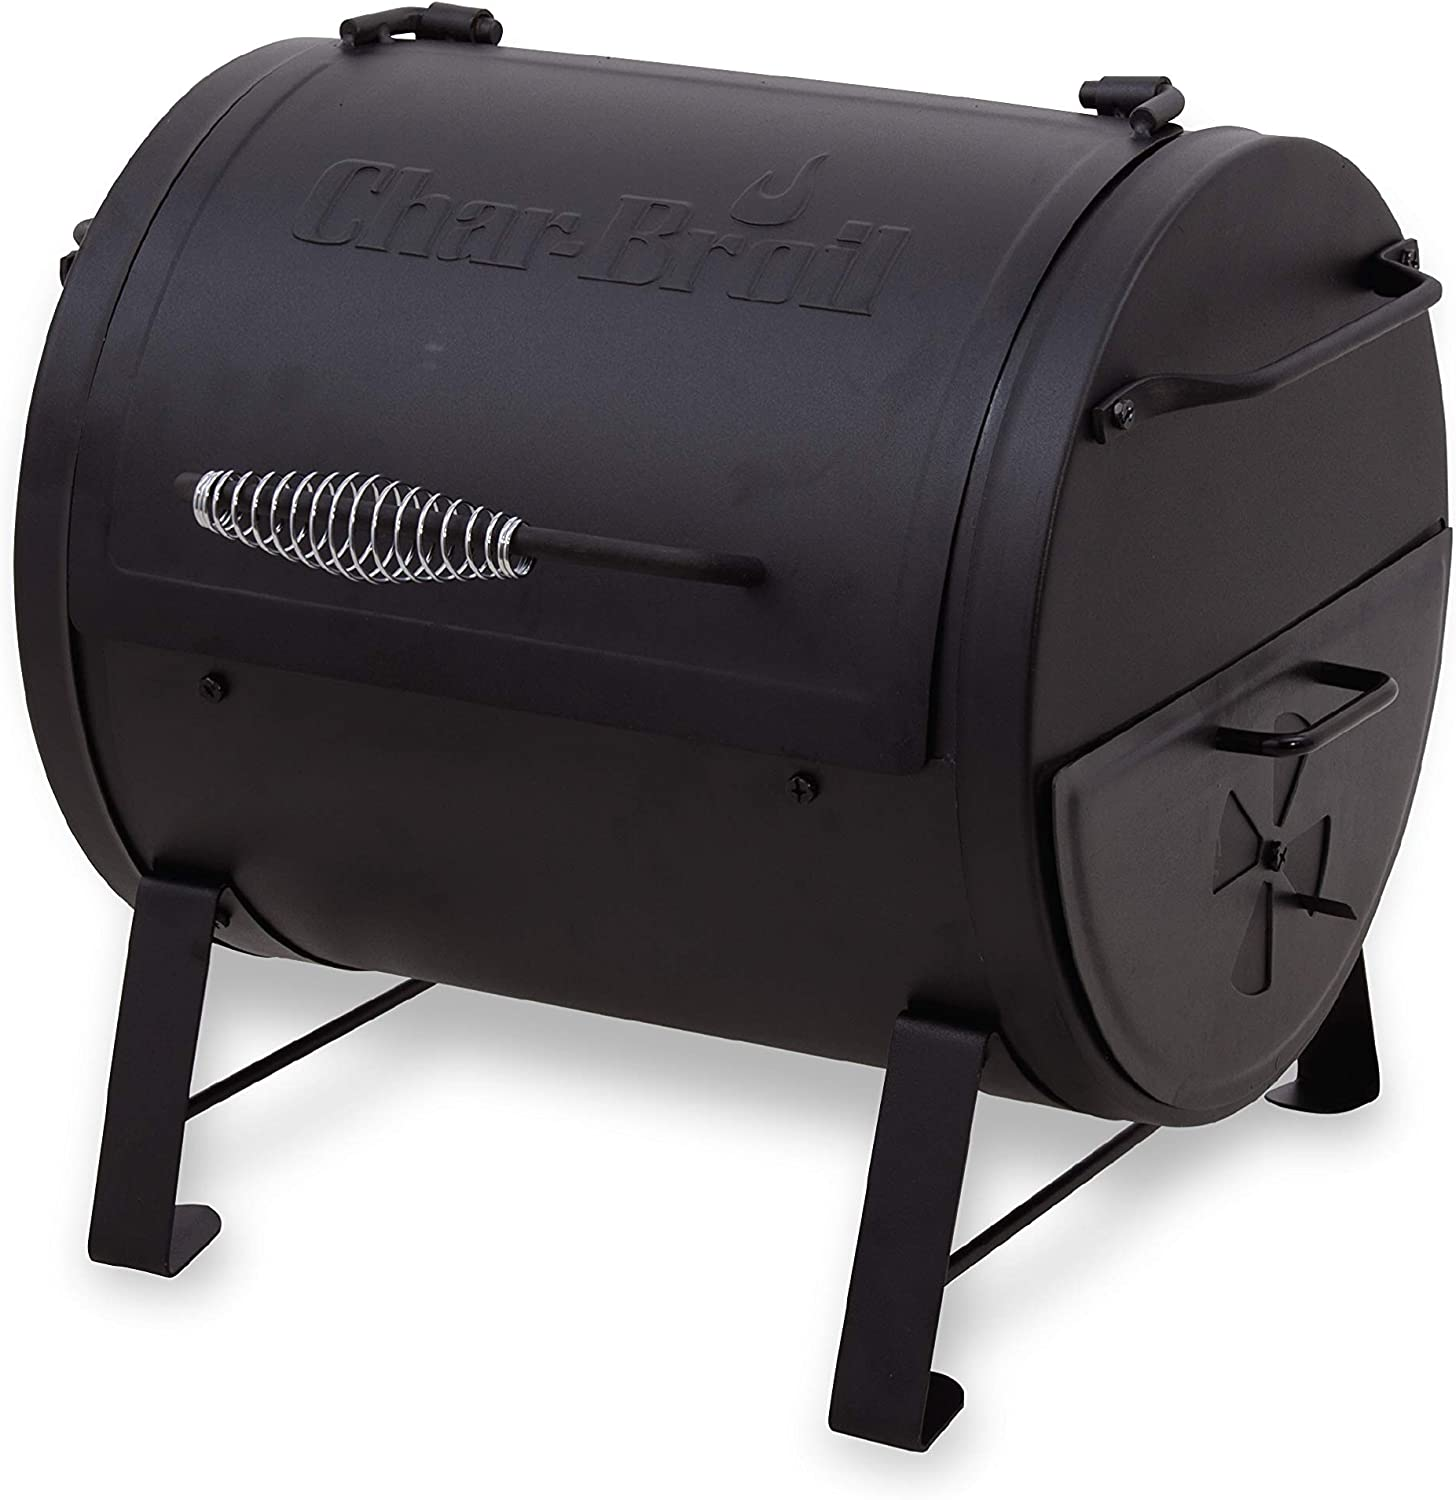 Char-Broil Barrel Charcoal Grill